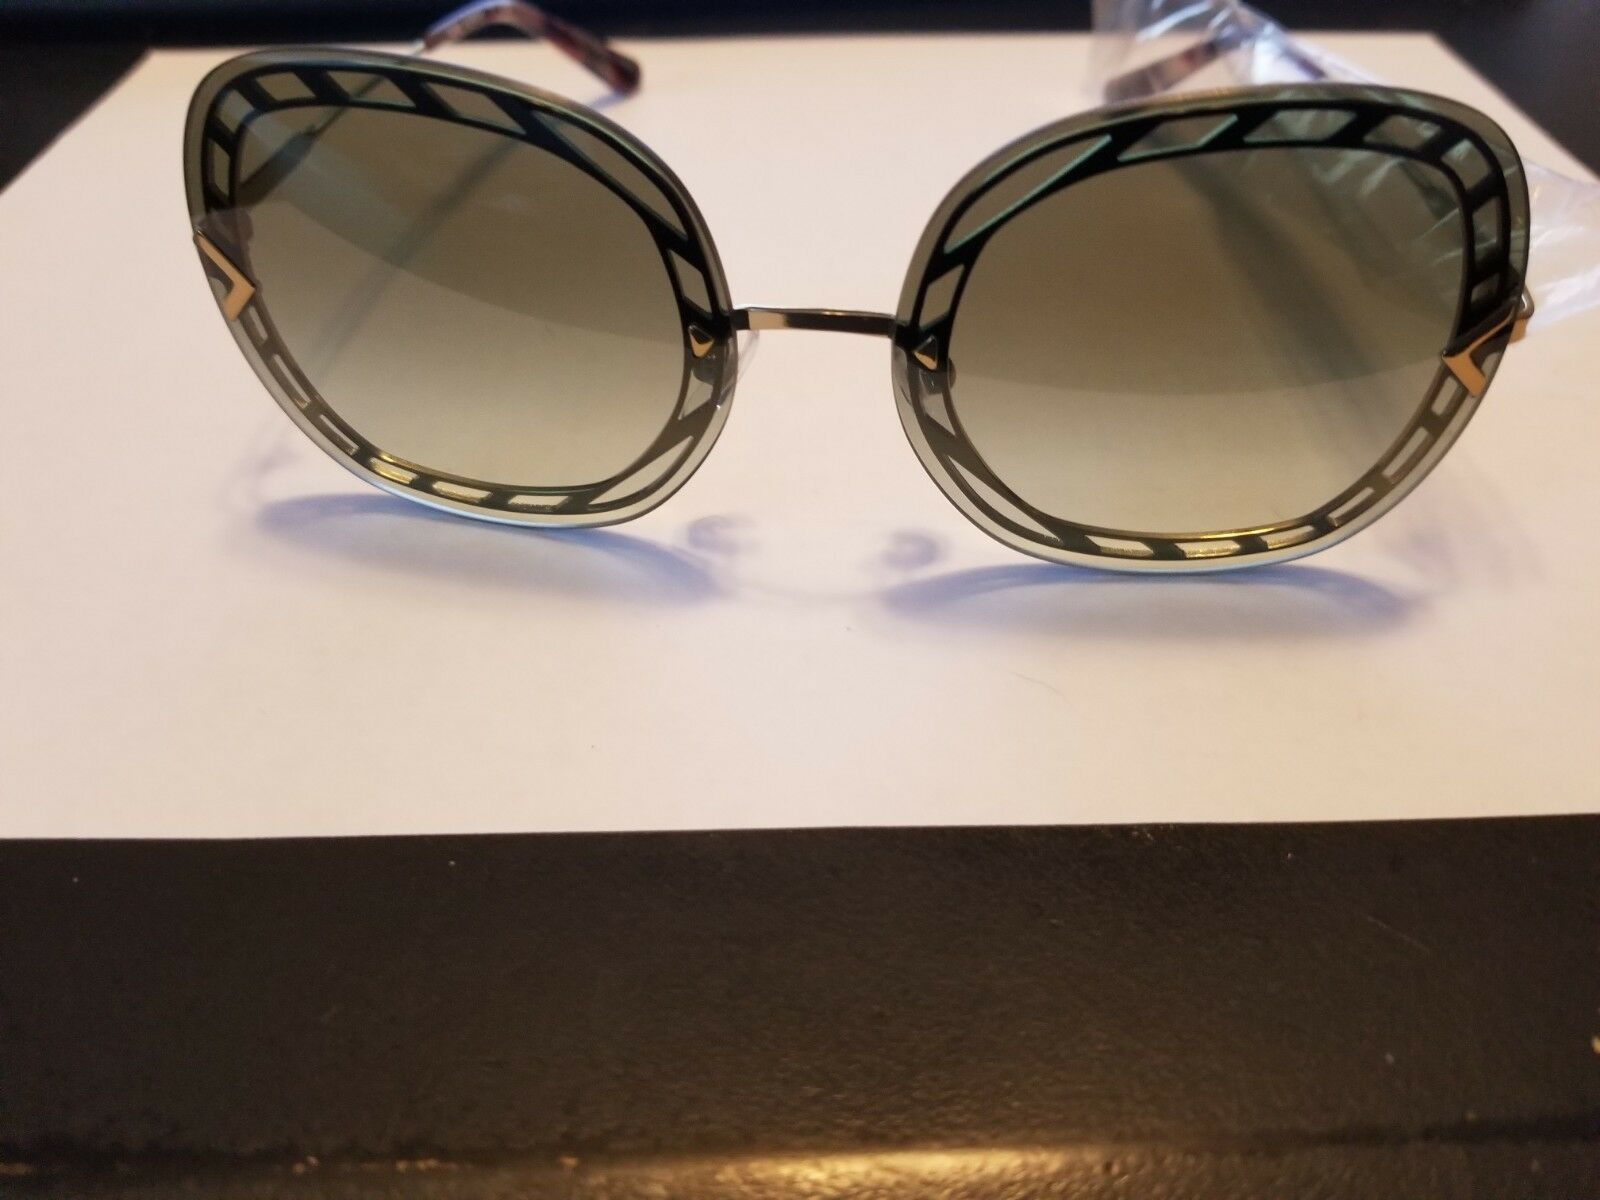 New $170 TORY BURCH Sunglasses TY6068 COLOR 3160/8E..100% AUTHENTIC NEW - $83.16